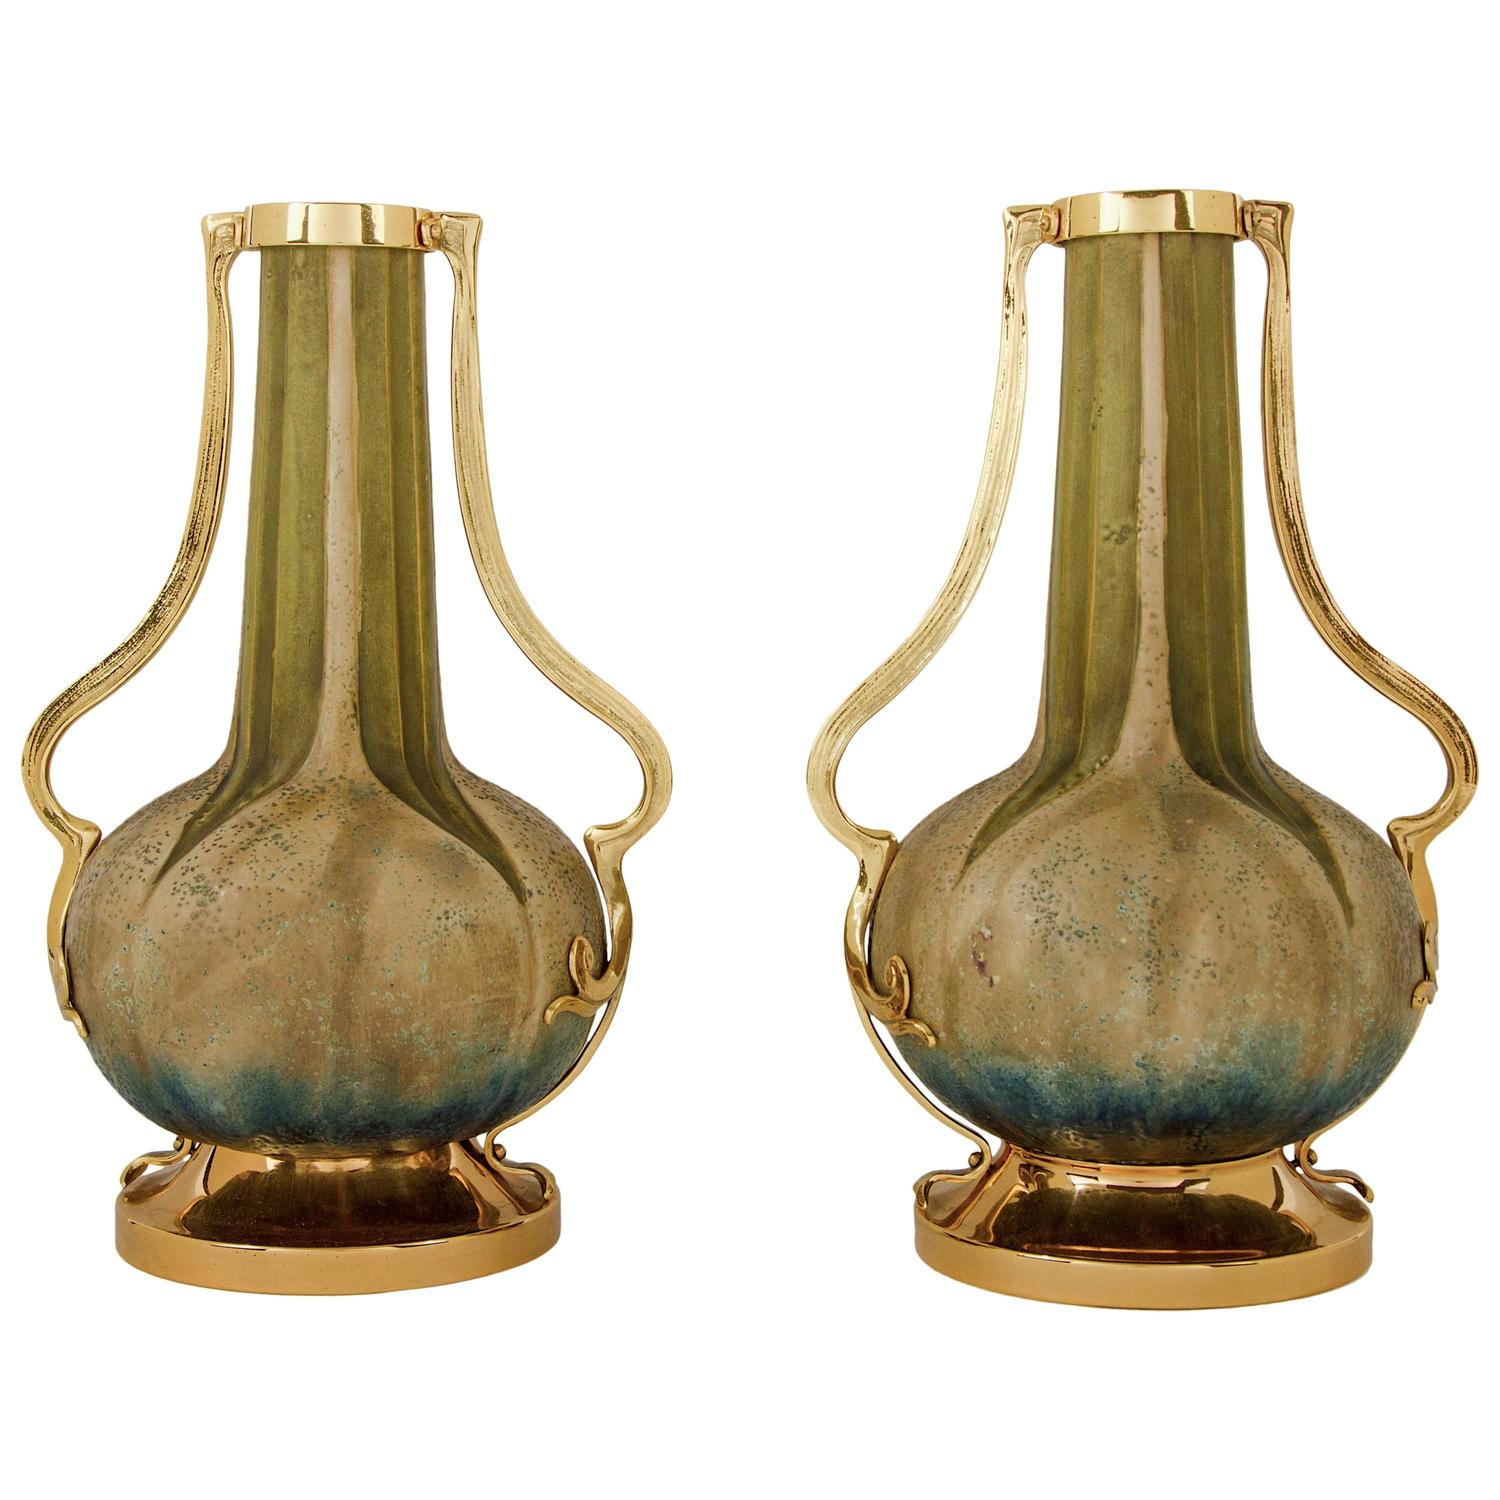 Amphora Pottery Vase Pair with Gold Metal Mounts, Paul Dachsel (Attr.) For  Sale at 1stdibs